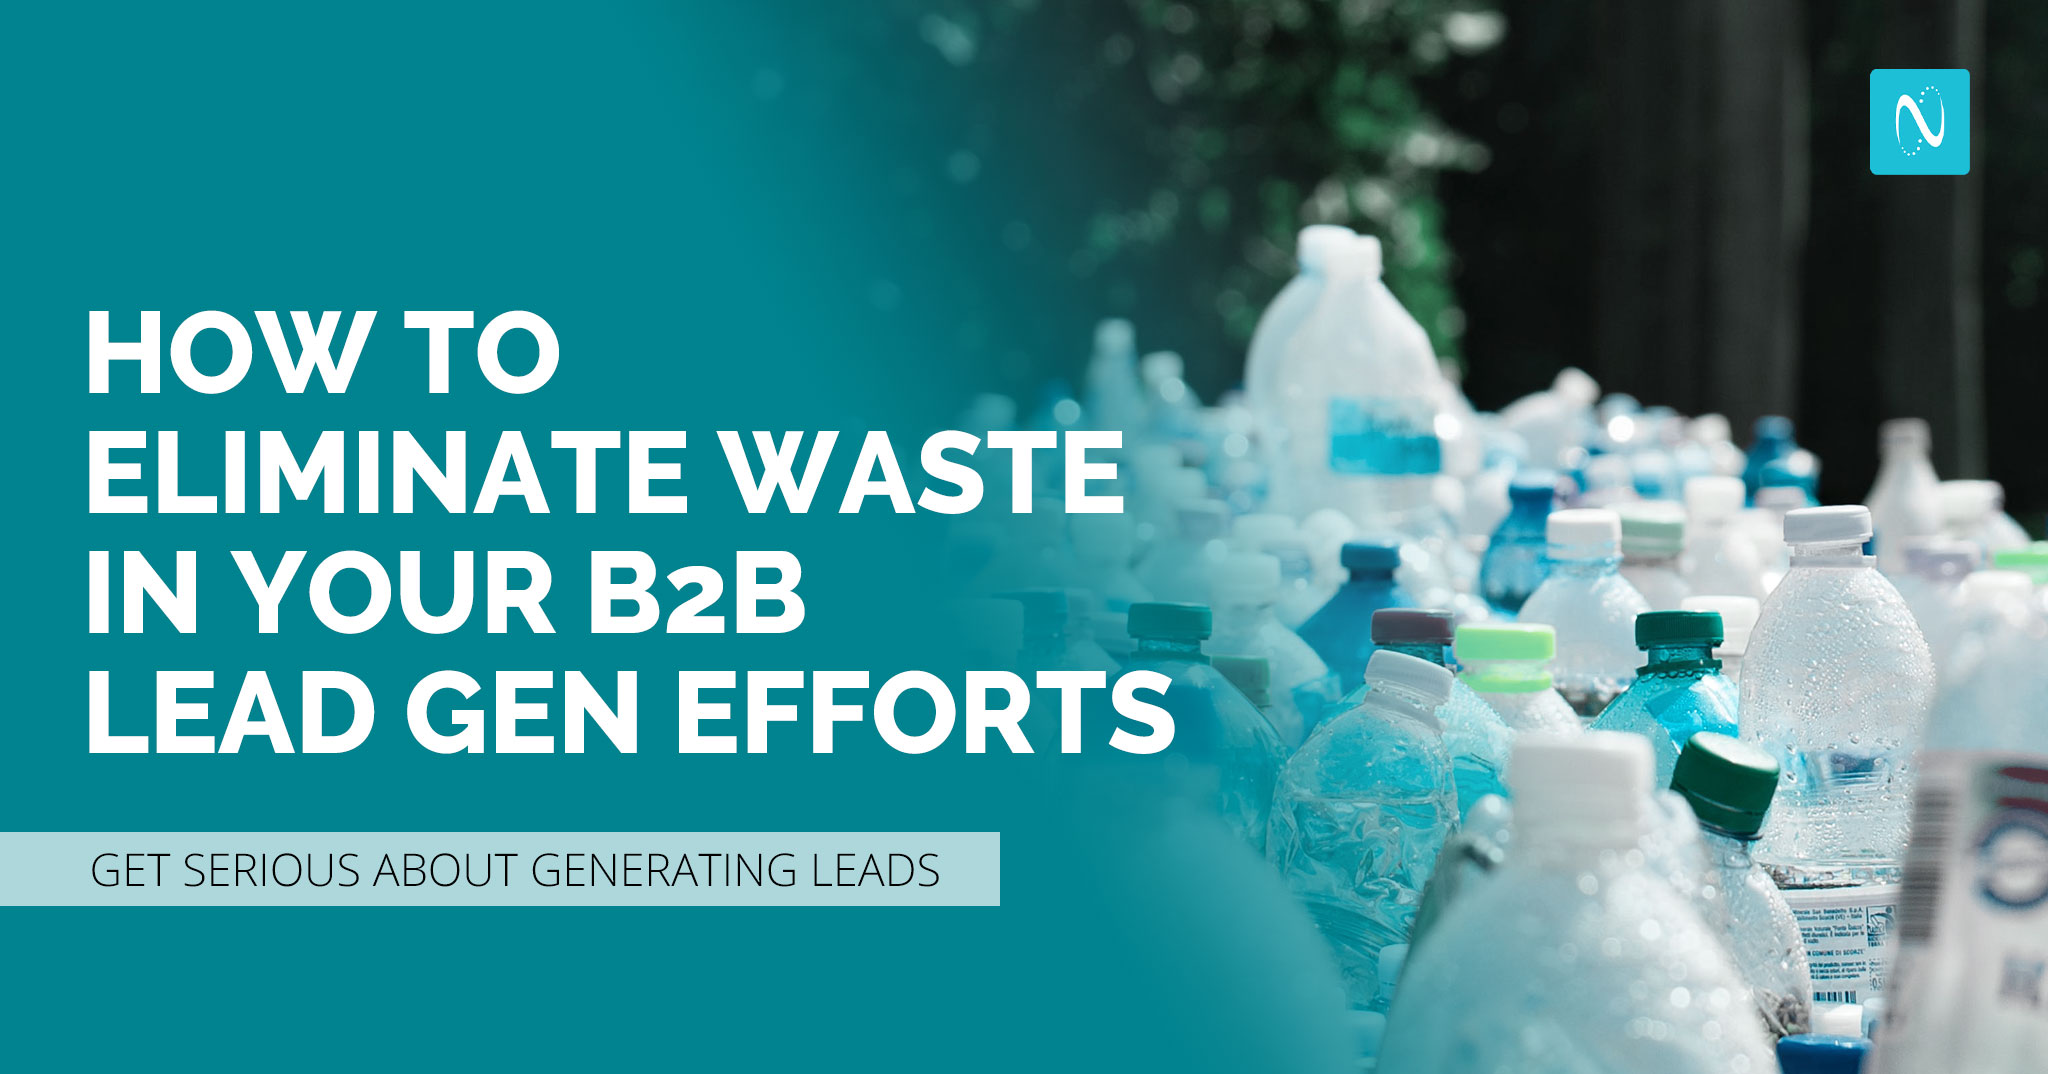 Traditional B2B lead gen and single use plastics have a lot in common: waste.